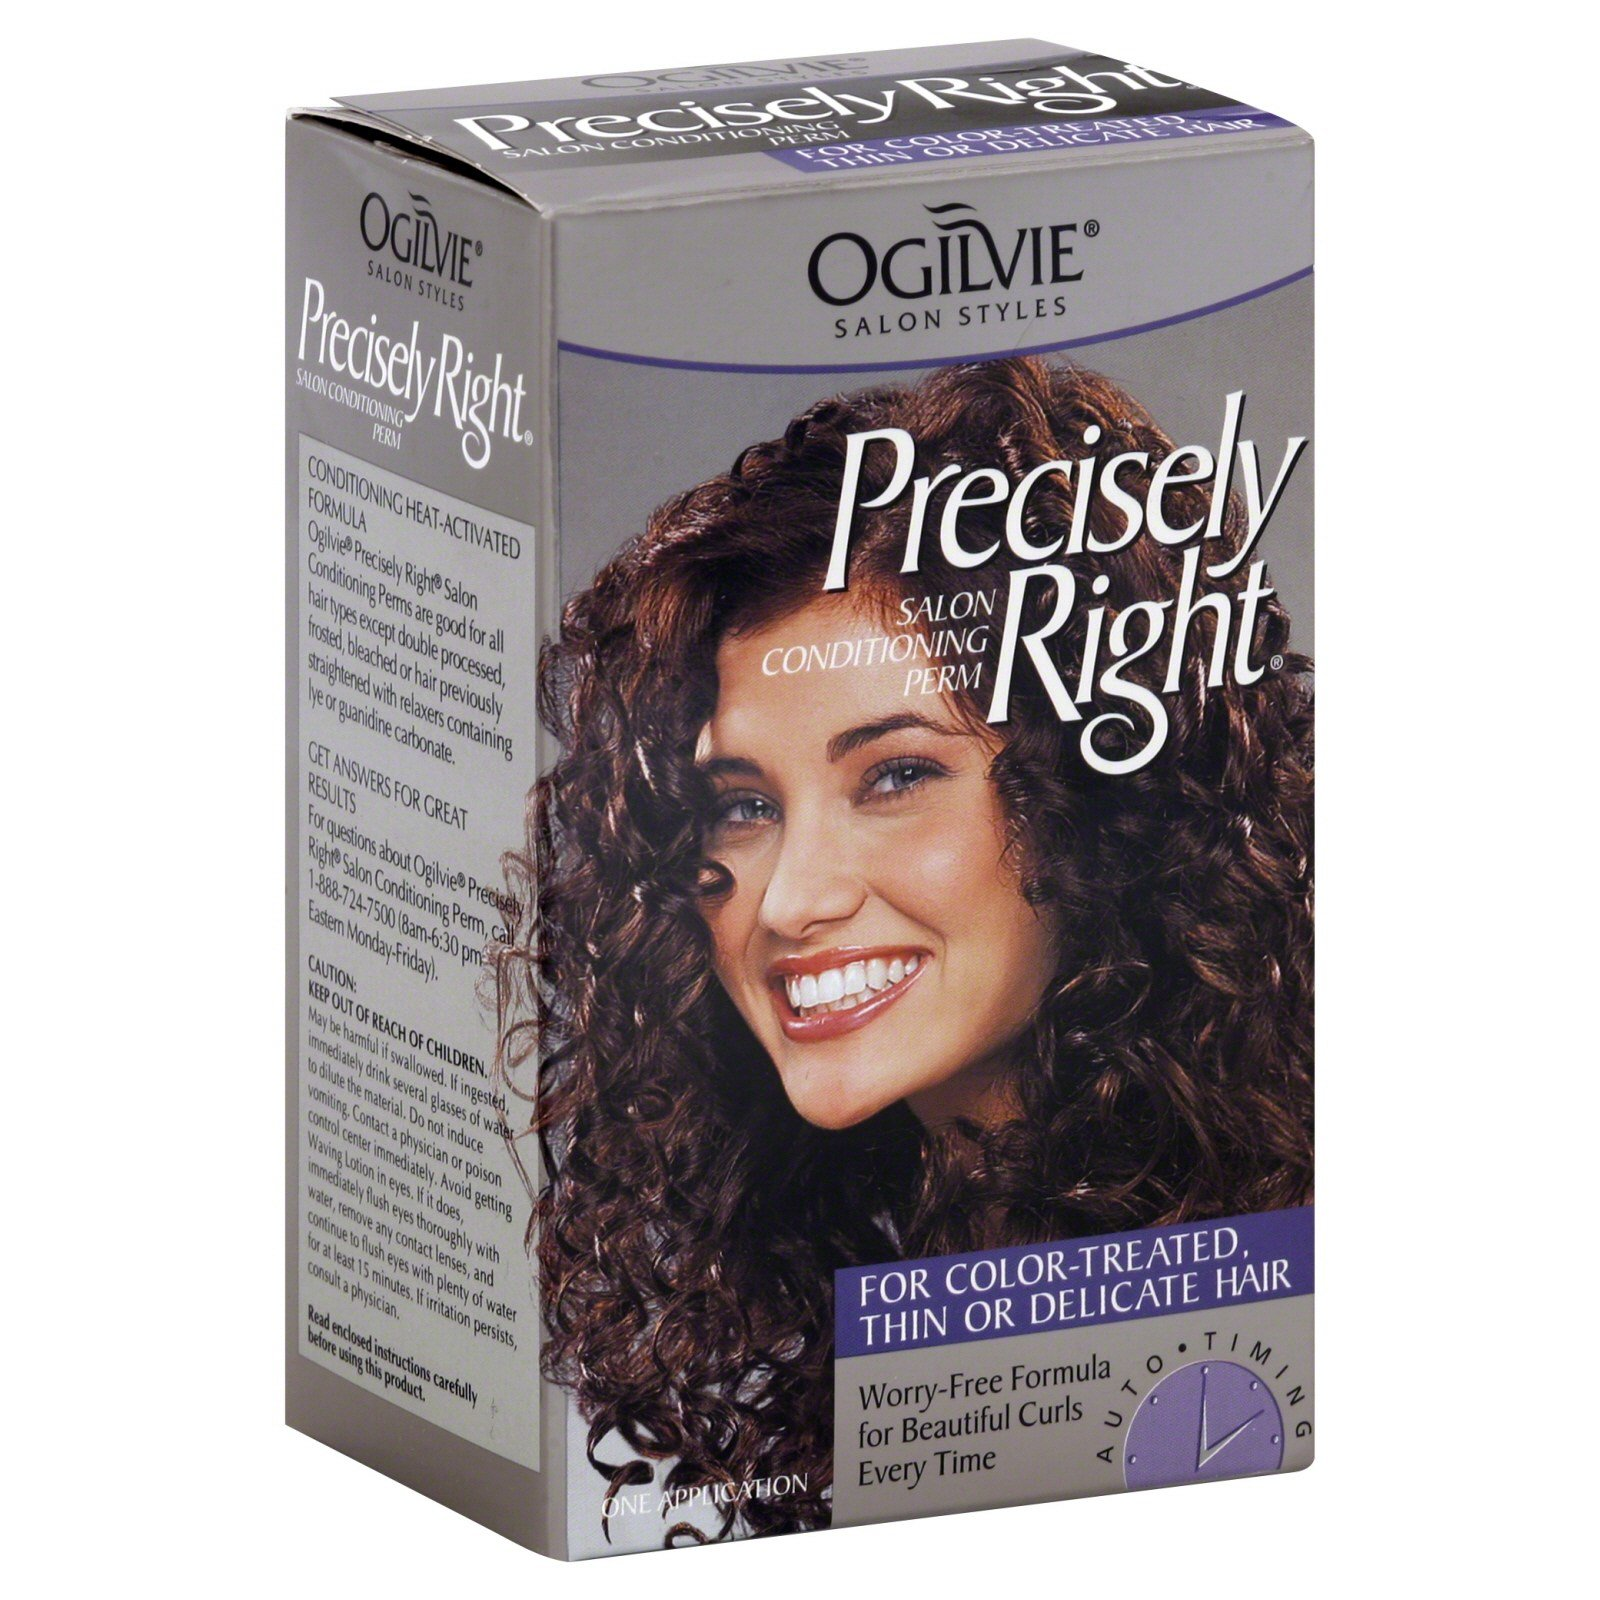 The Best Ogilvie Precisely Right Professional Conditioning Perm For Color Treated Thin Or Delicate Pictures